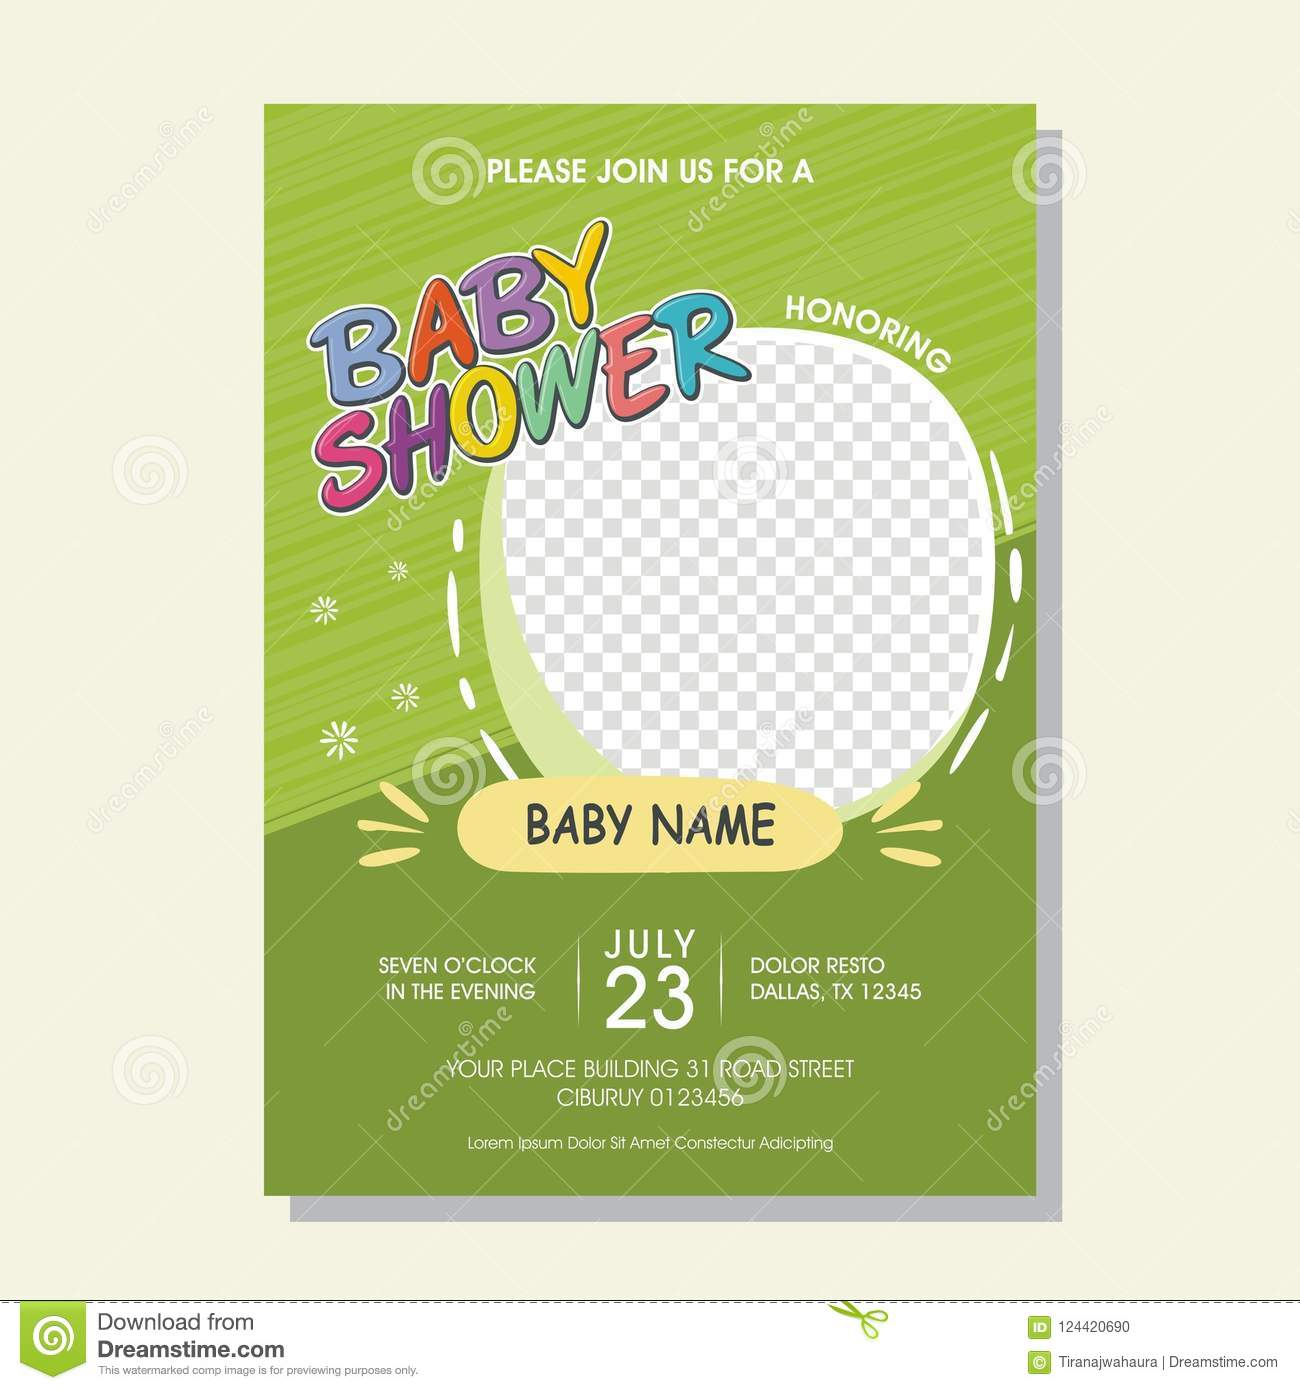 Lovely Baby Shower Invitation Card With Cartoon Style Stock